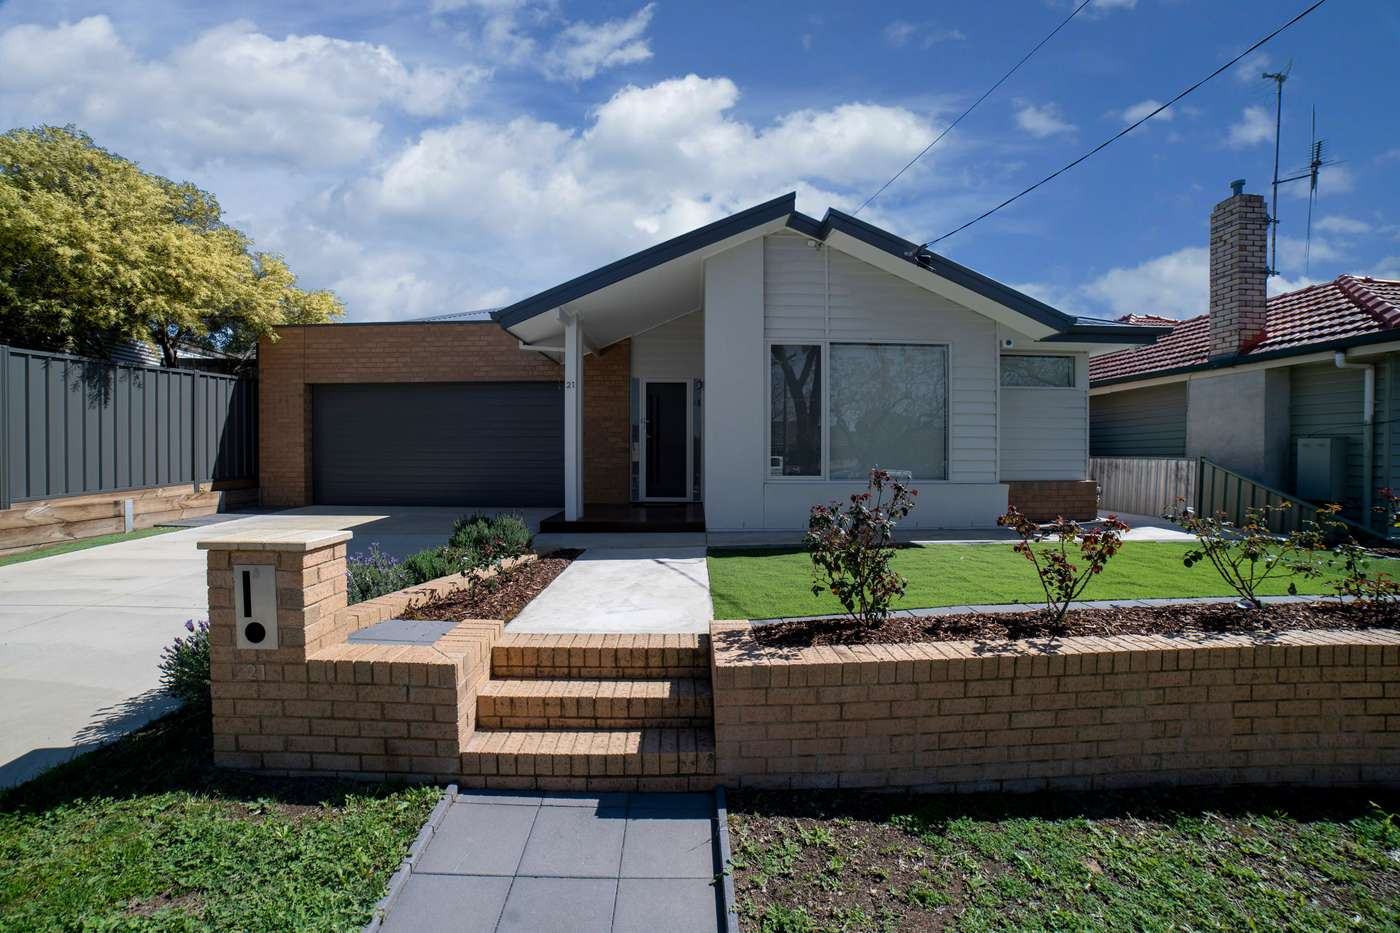 Main view of Homely house listing, 21 Edwin Street, North Bendigo, VIC 3550